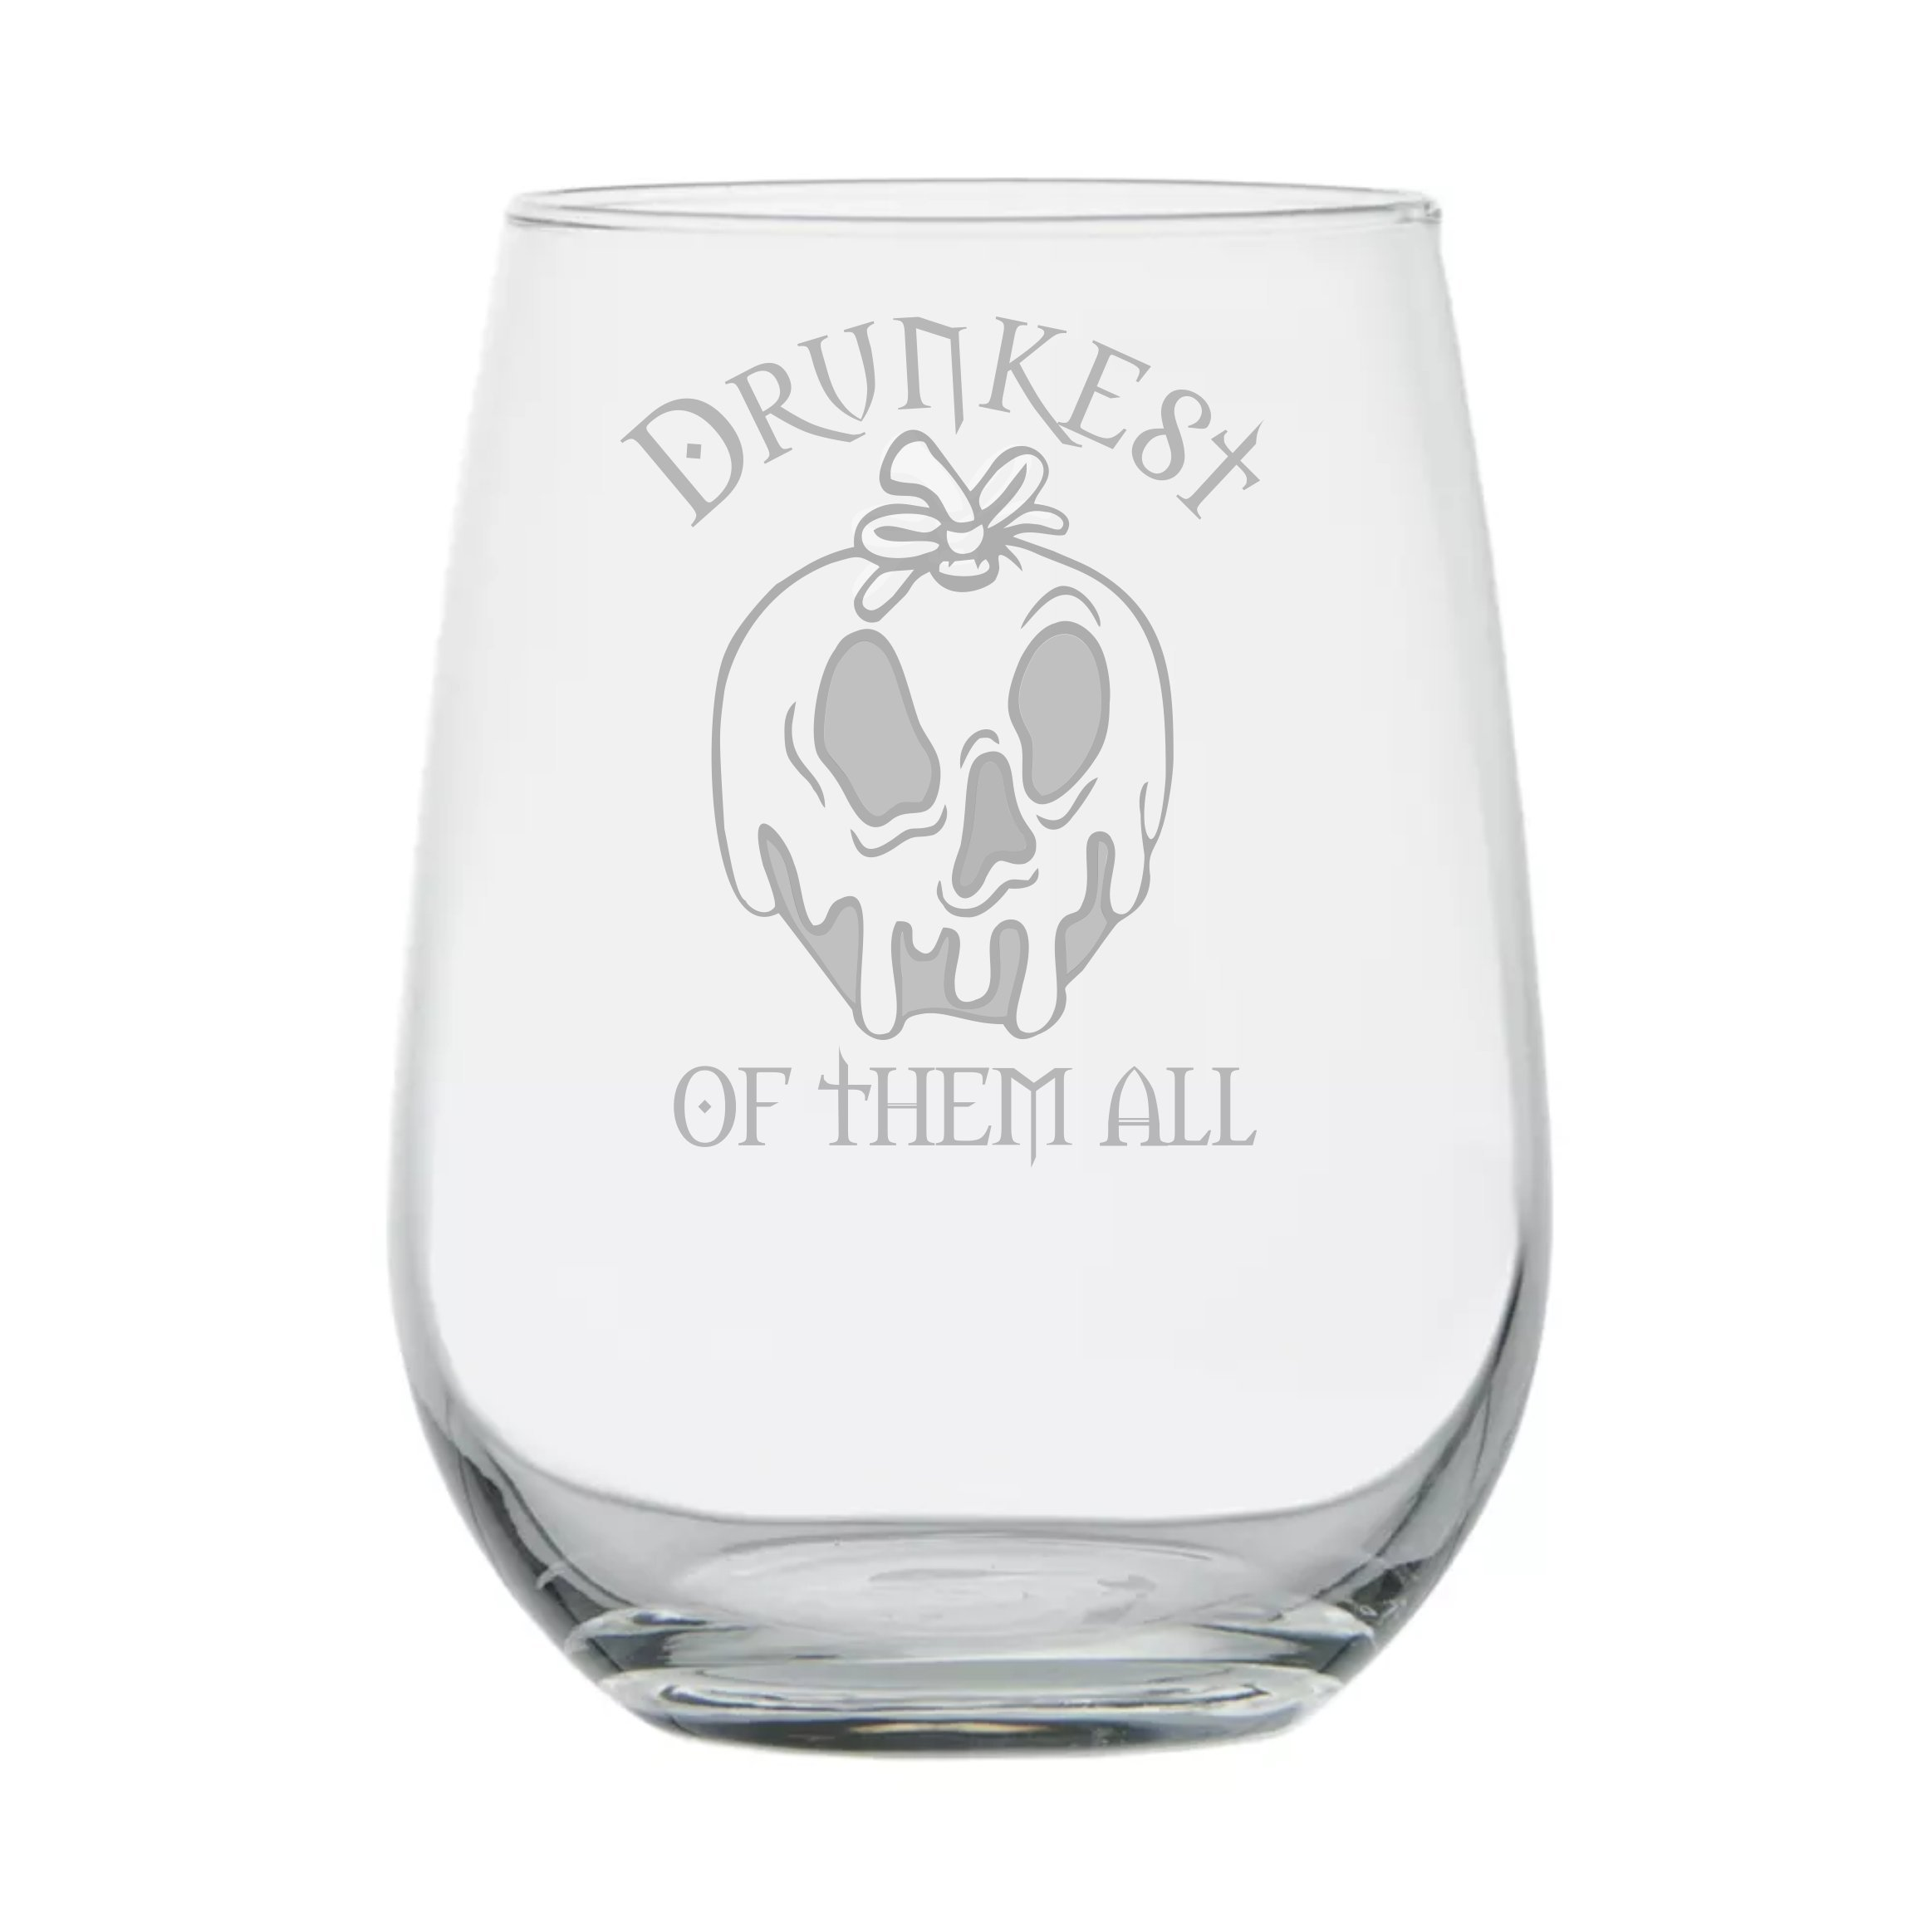 Snow White ★ Drunkest of them All ★ Poison Apple ★ Fairy Tales ★ Funny Birthday Gift ★ Movie Themed ★ Couples Gifts ★ Disney Princess Wine Glass ★ Mirror Mirror ★ Evil Witch ★ Goth Girl